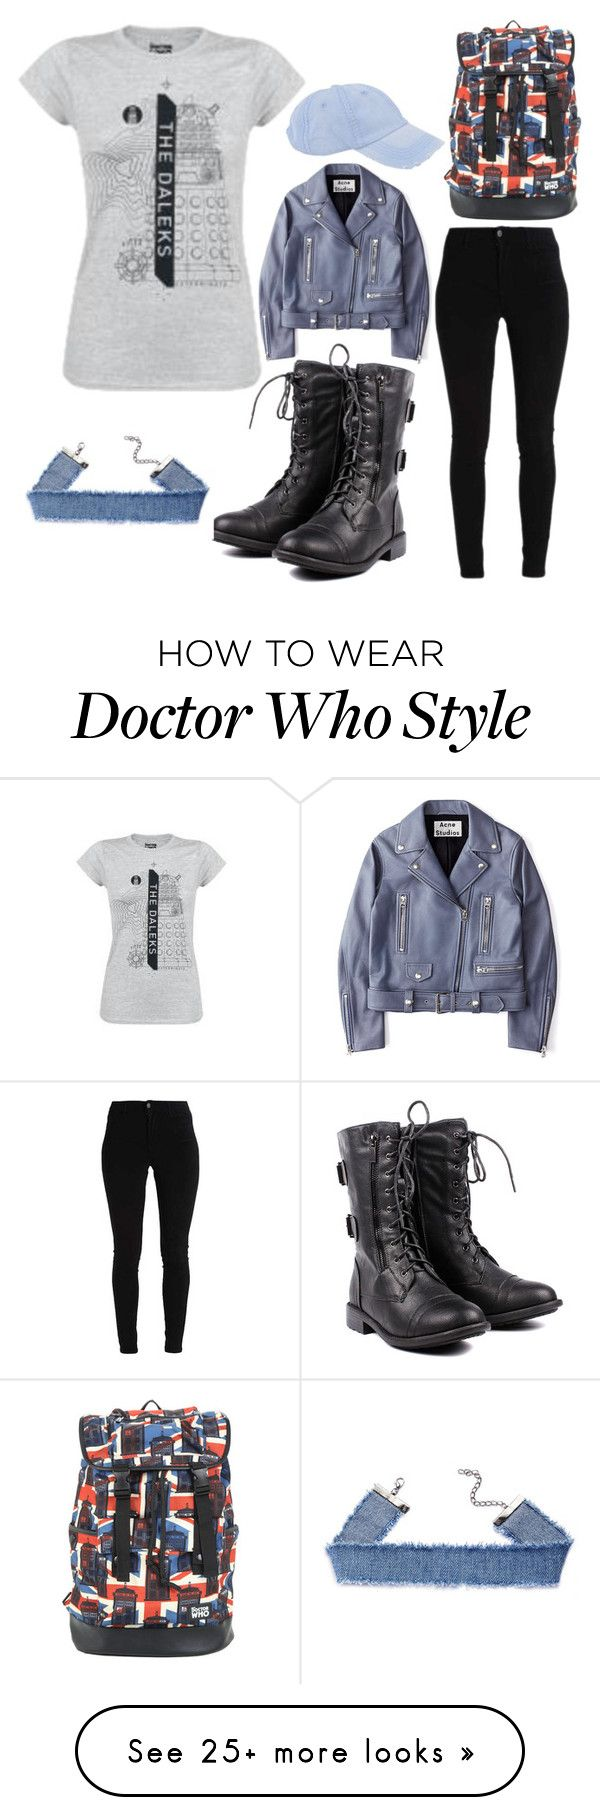 """Simple Outfit #2"" by elizabethshakespeare on Polyvore featuring Acne Studios, Armitage Avenue and Hot Topic"